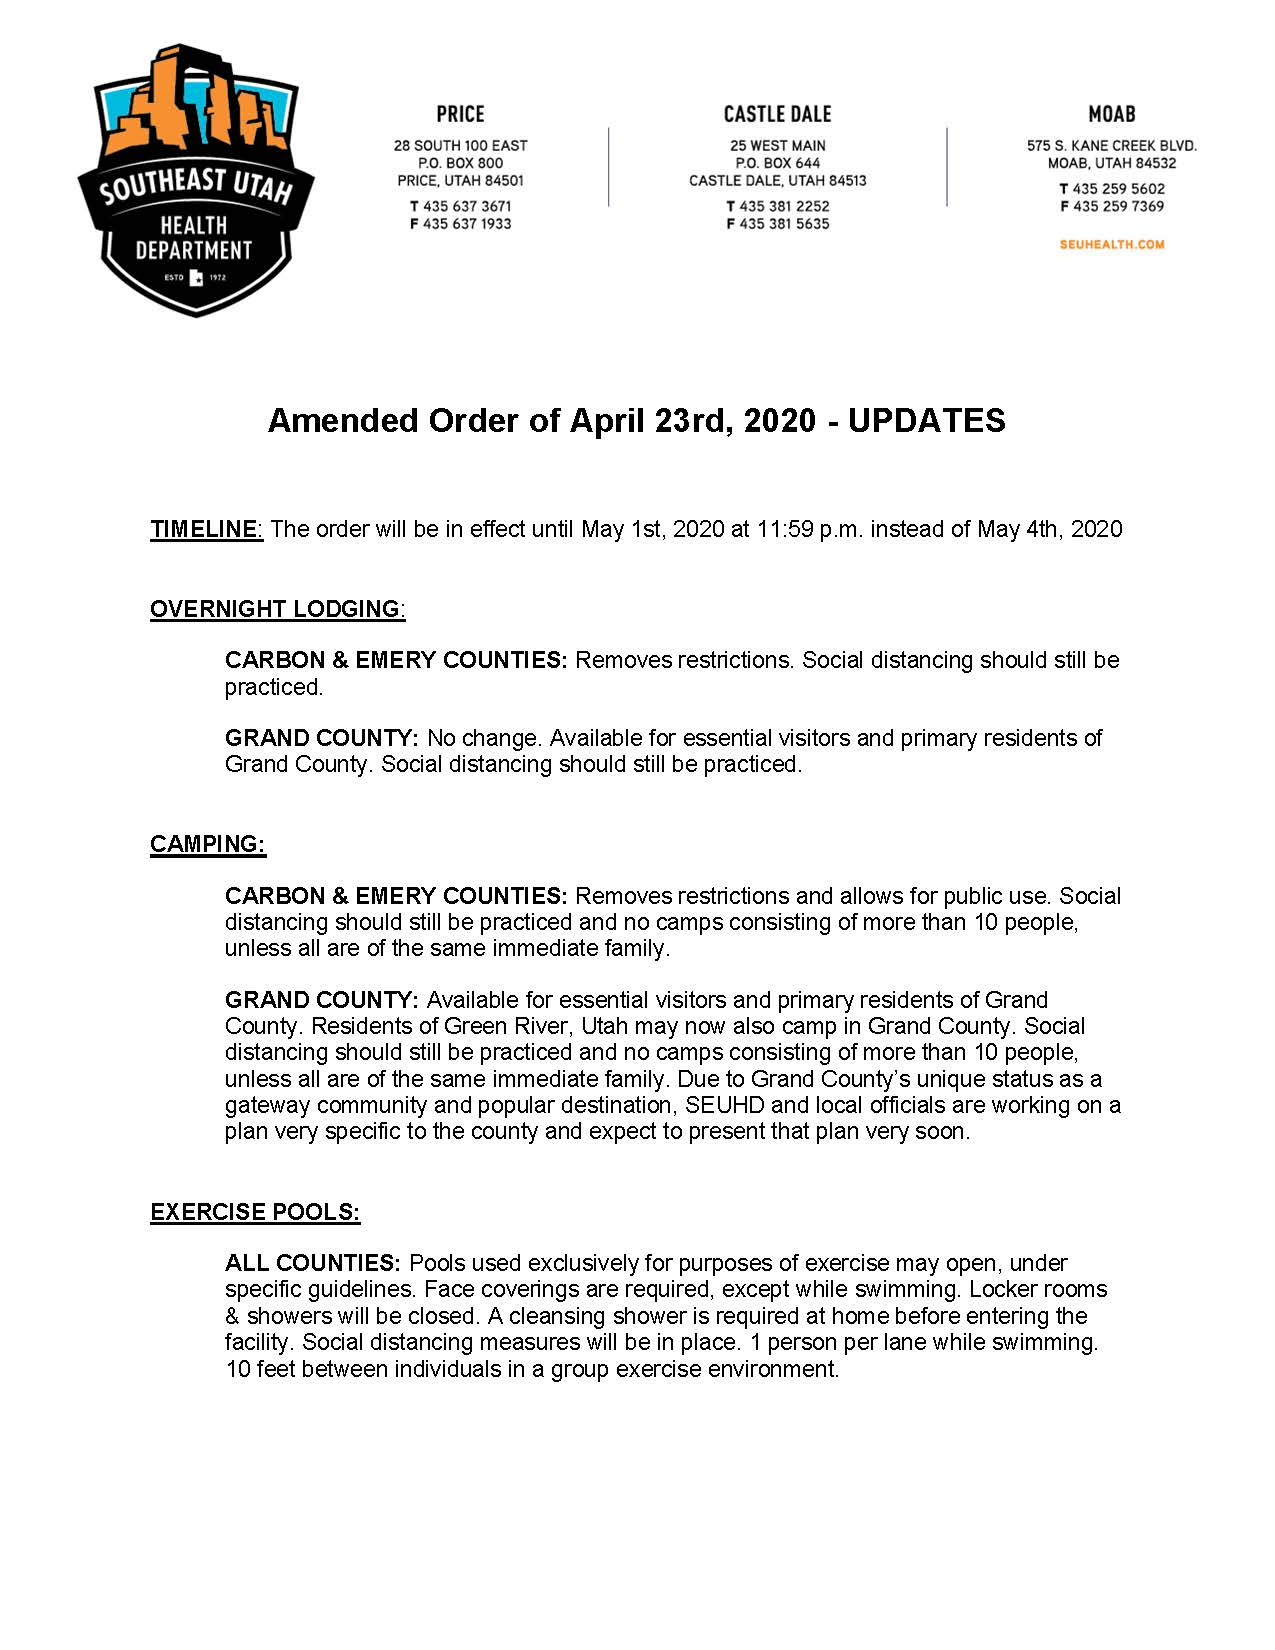 April 23 Amended Order Info (1)